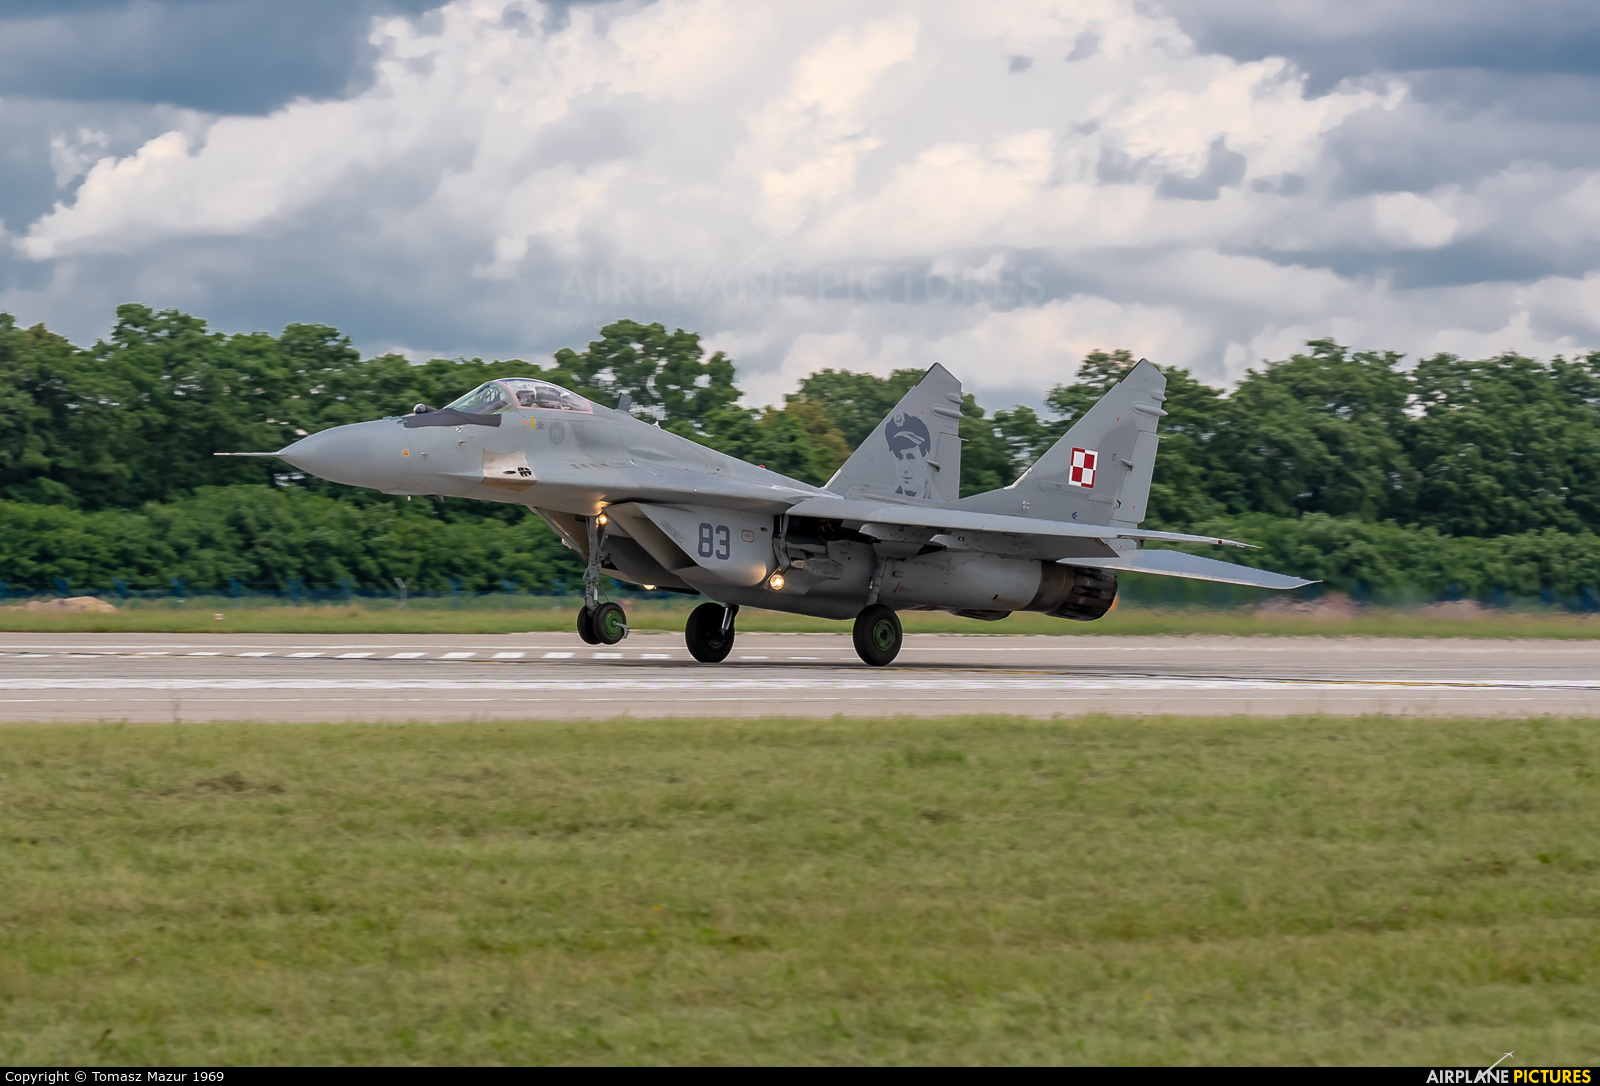 Poland - Air Force 83 aircraft at Mińsk Mazowiecki